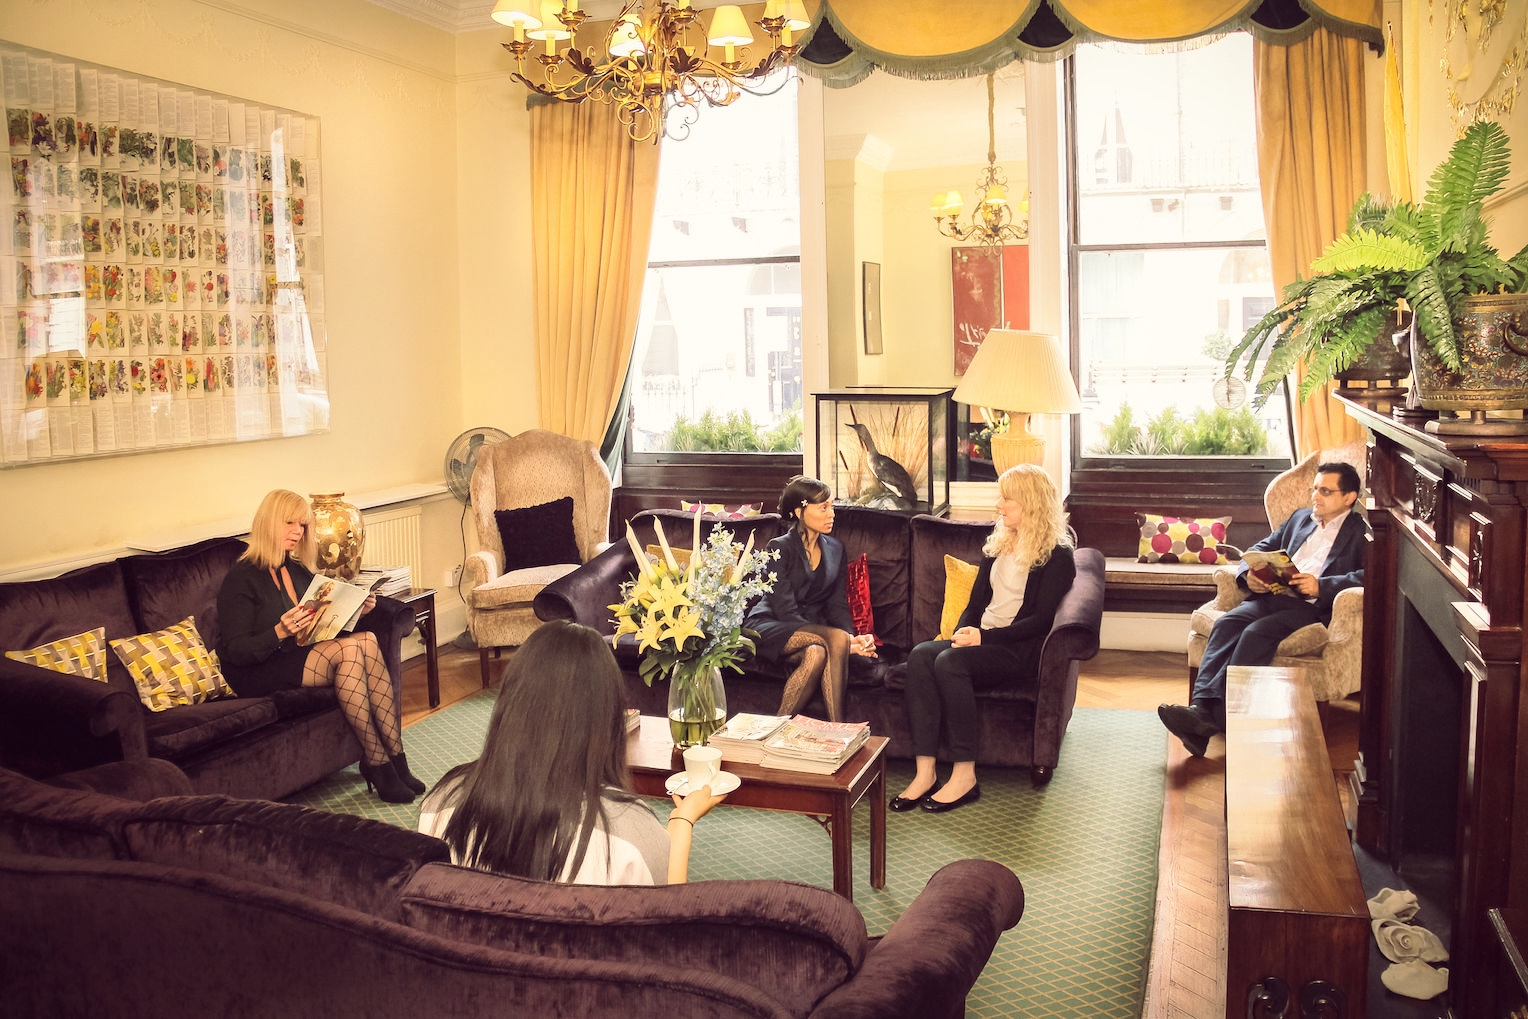 66 Harley Street provides relaxed setting for you have your investigations and care